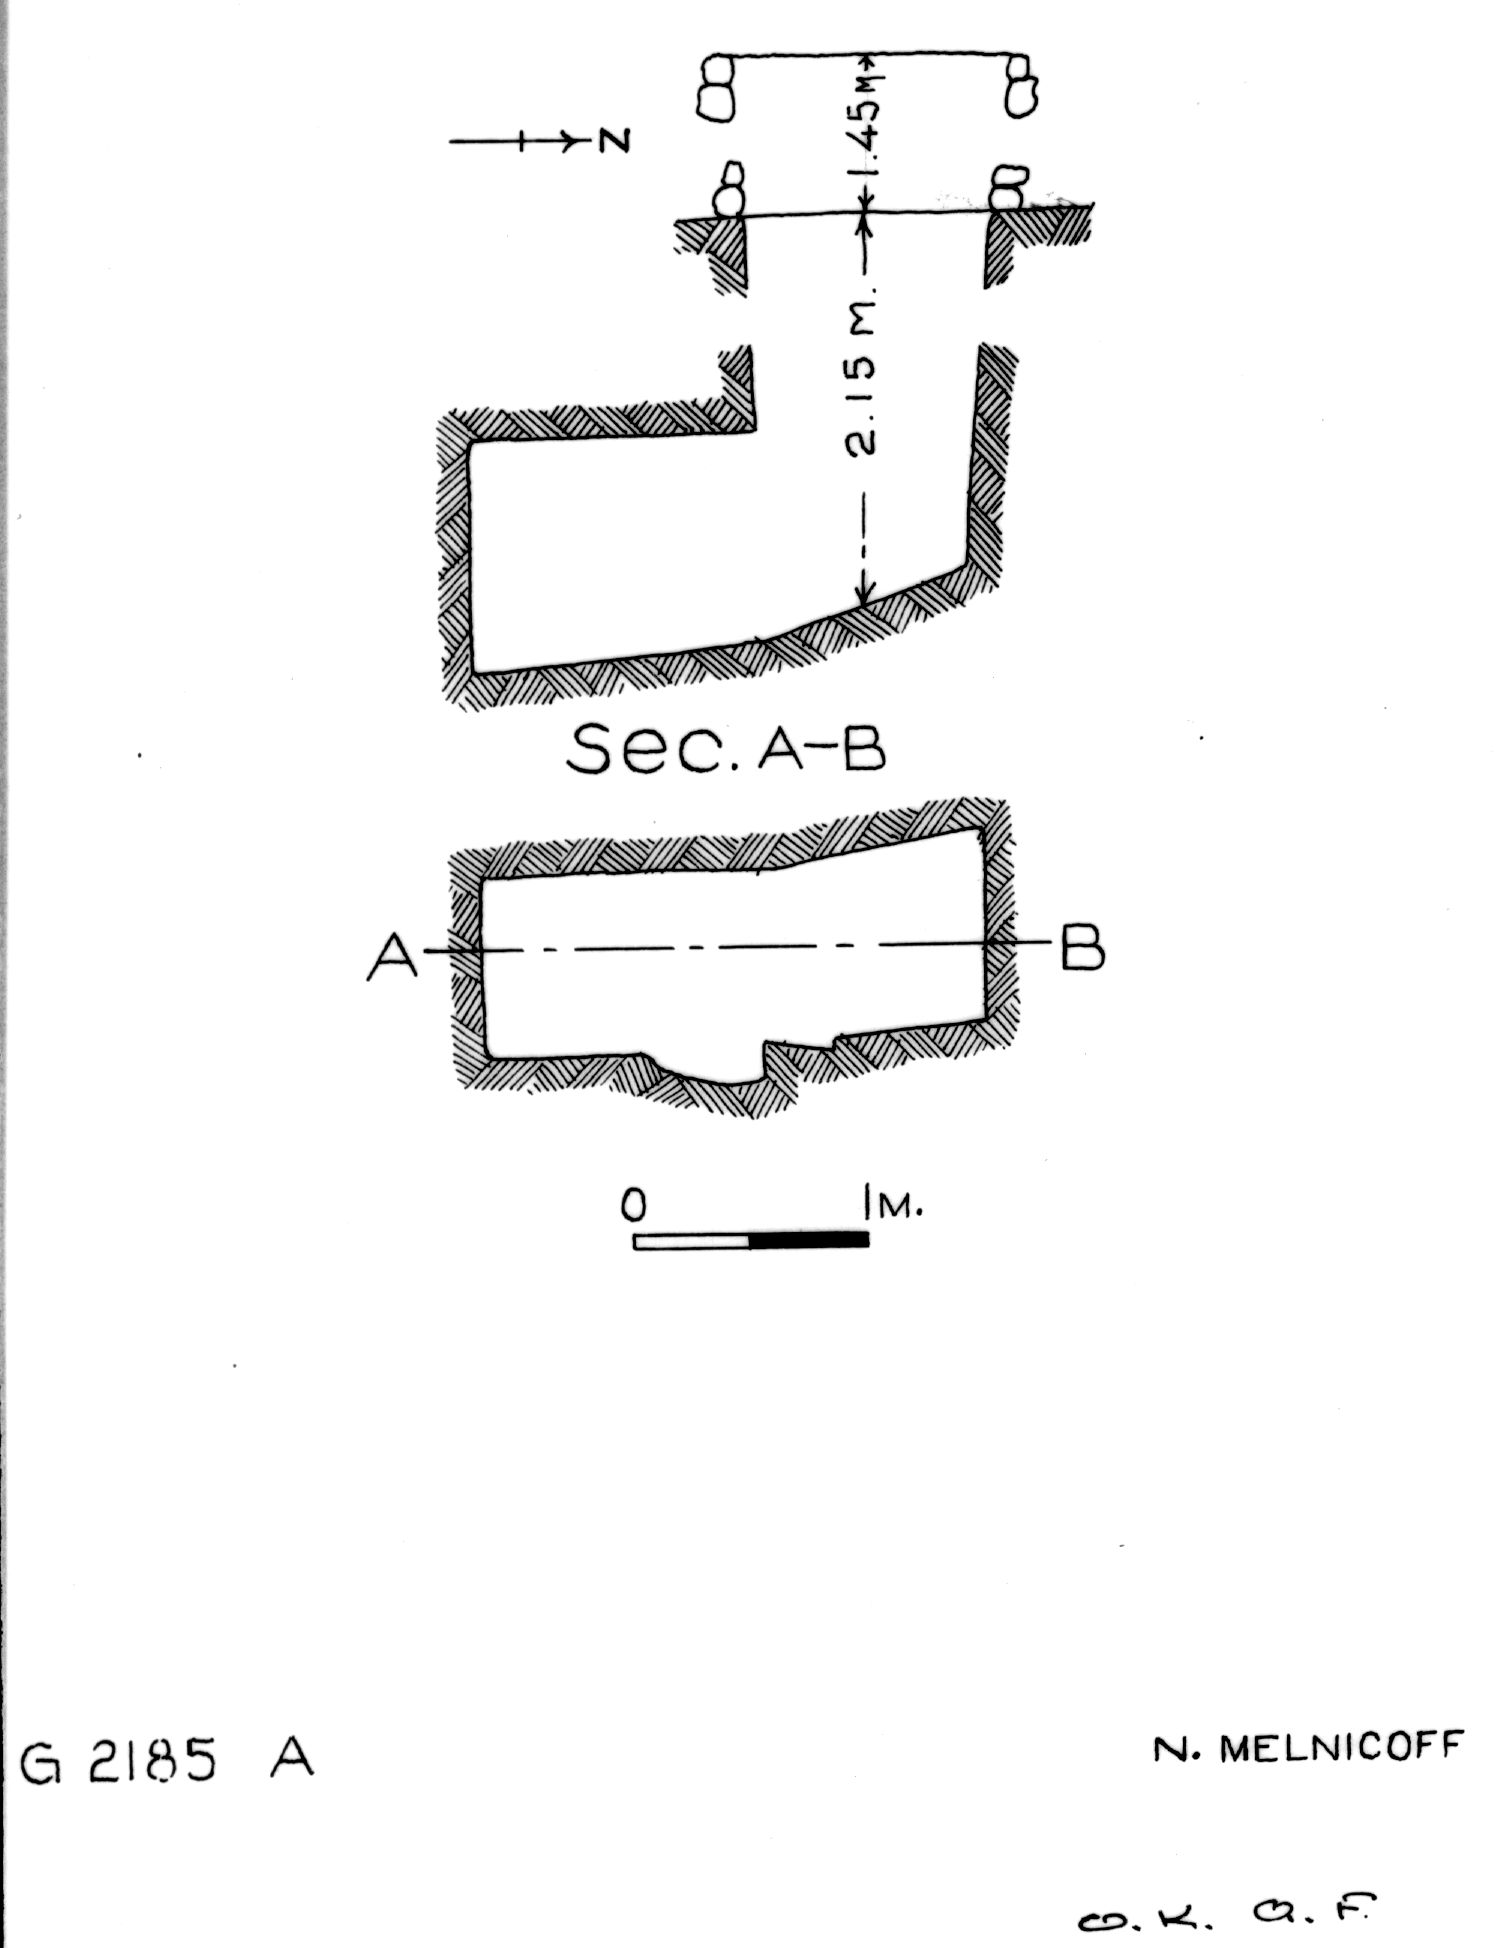 Maps and plans: G 2185, Shaft A